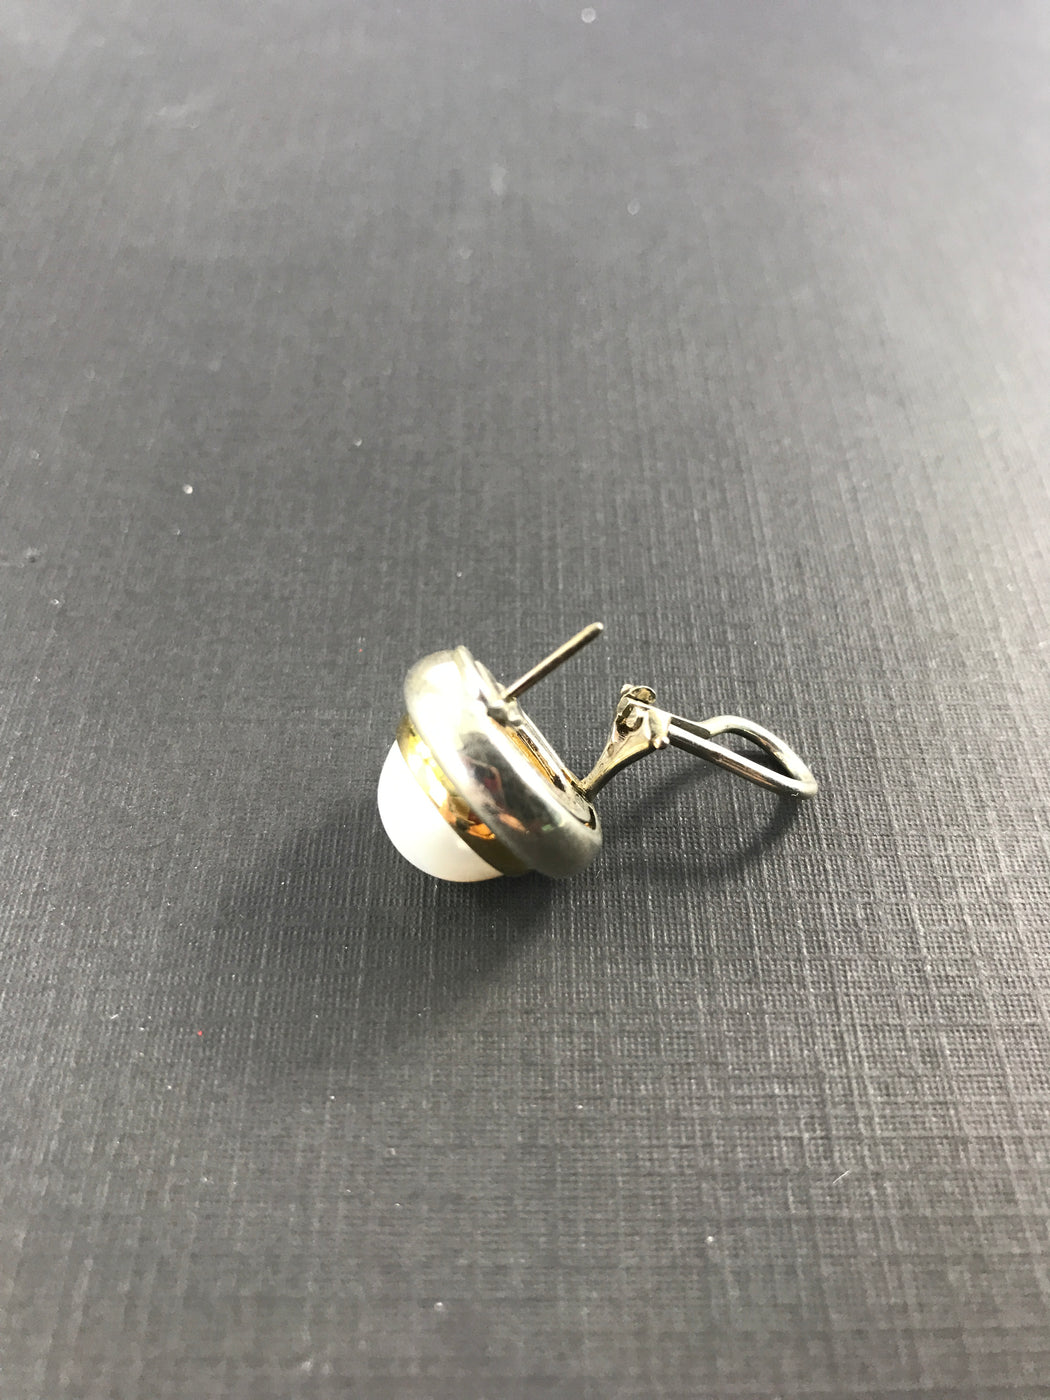 Tiffany & Co Sterling Silver 18K Gold Mabe Pearl Paloma Picasso Earrings c.1980's - Queen May